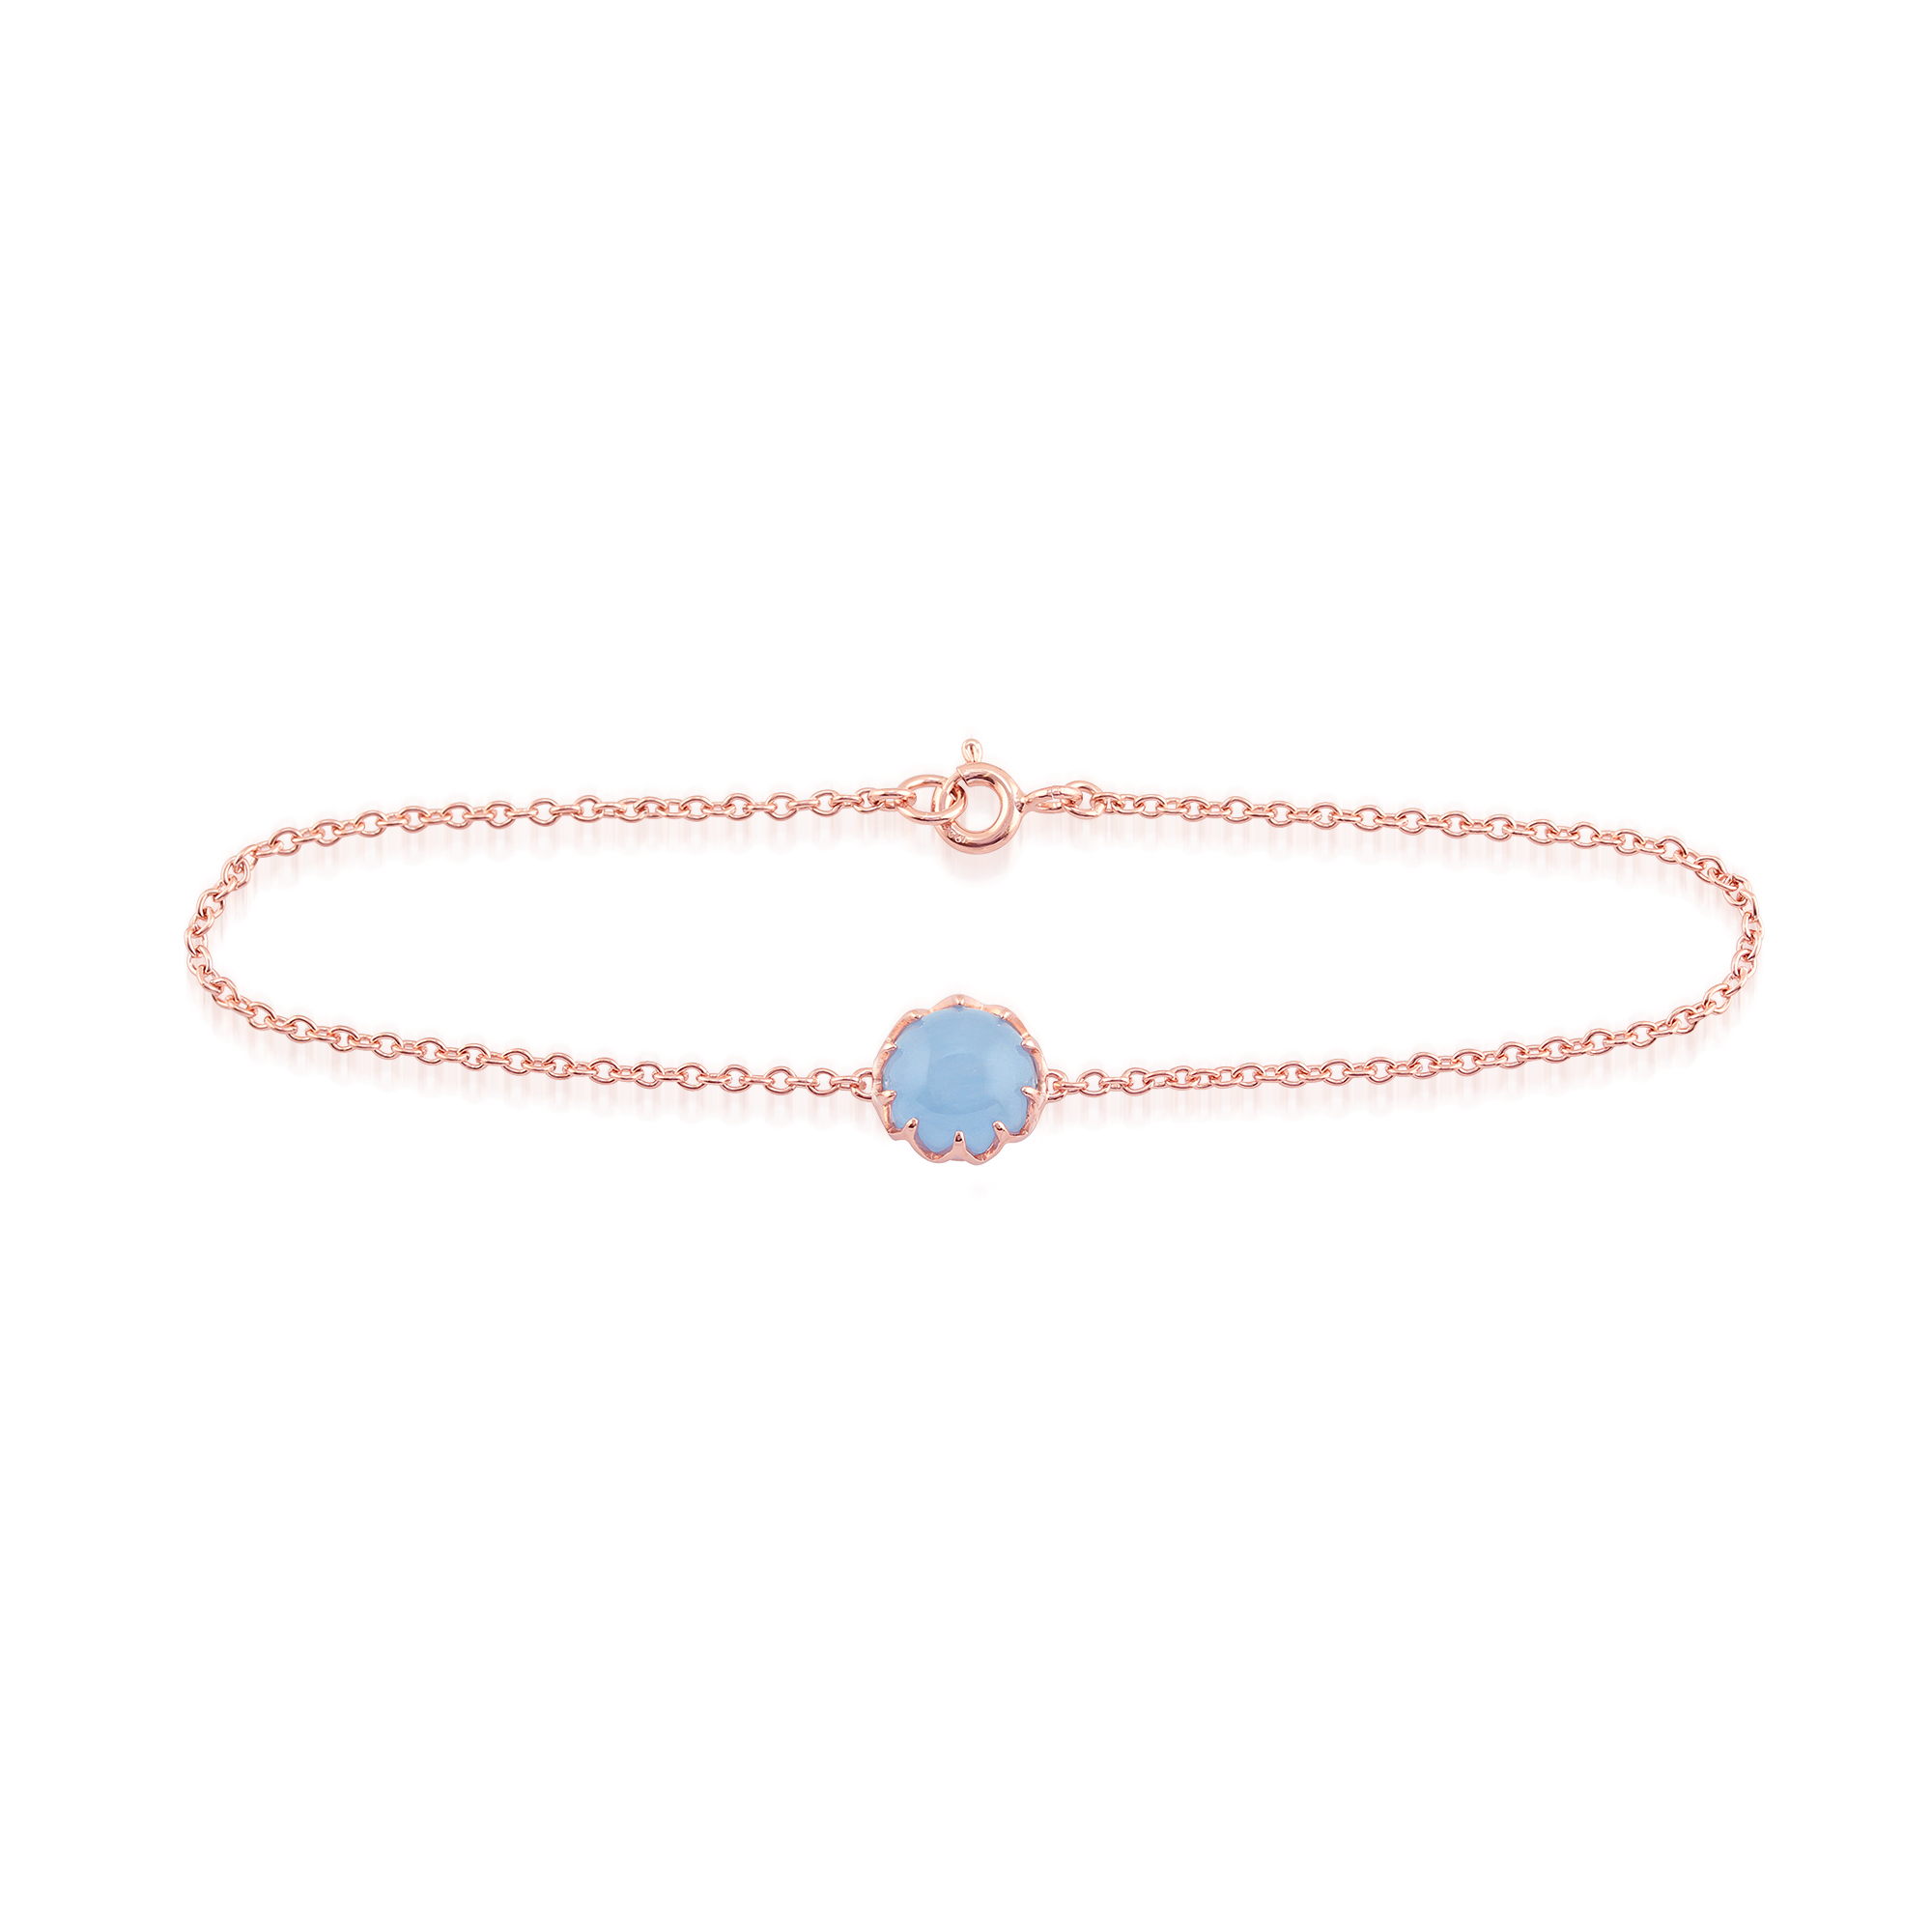 Blue Jade 'Calo' Pastel Bracelet in 9ct Rose Gold Plated Sterling Silver